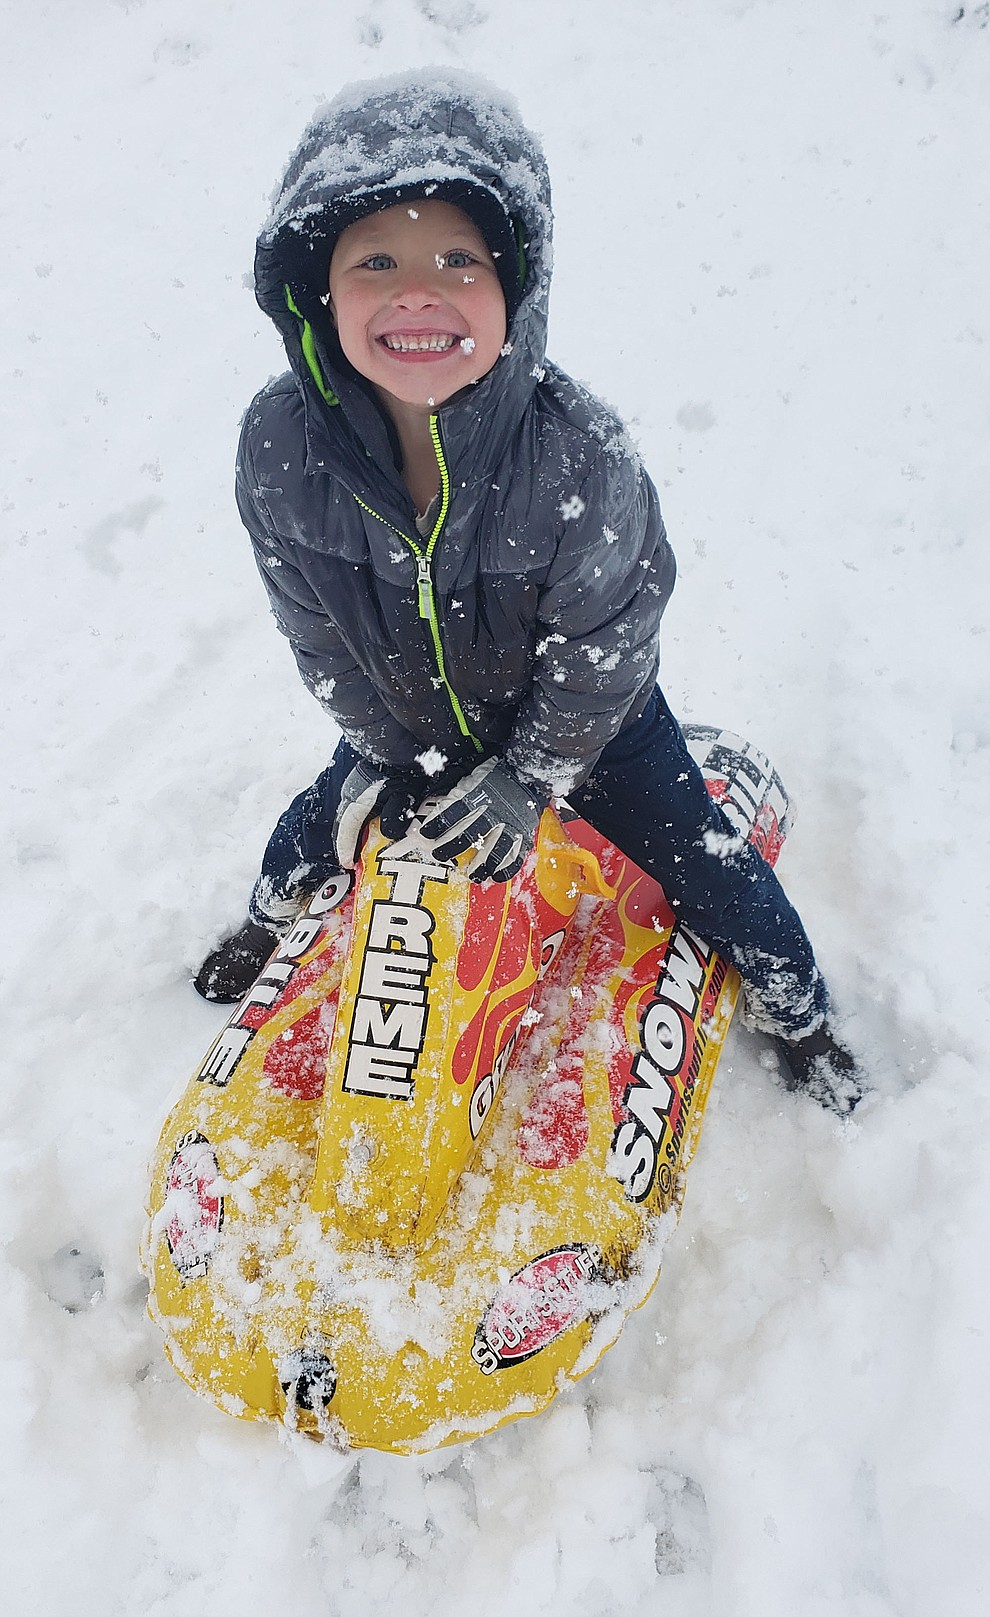 Liam Reed sledding (Brandy Reed)